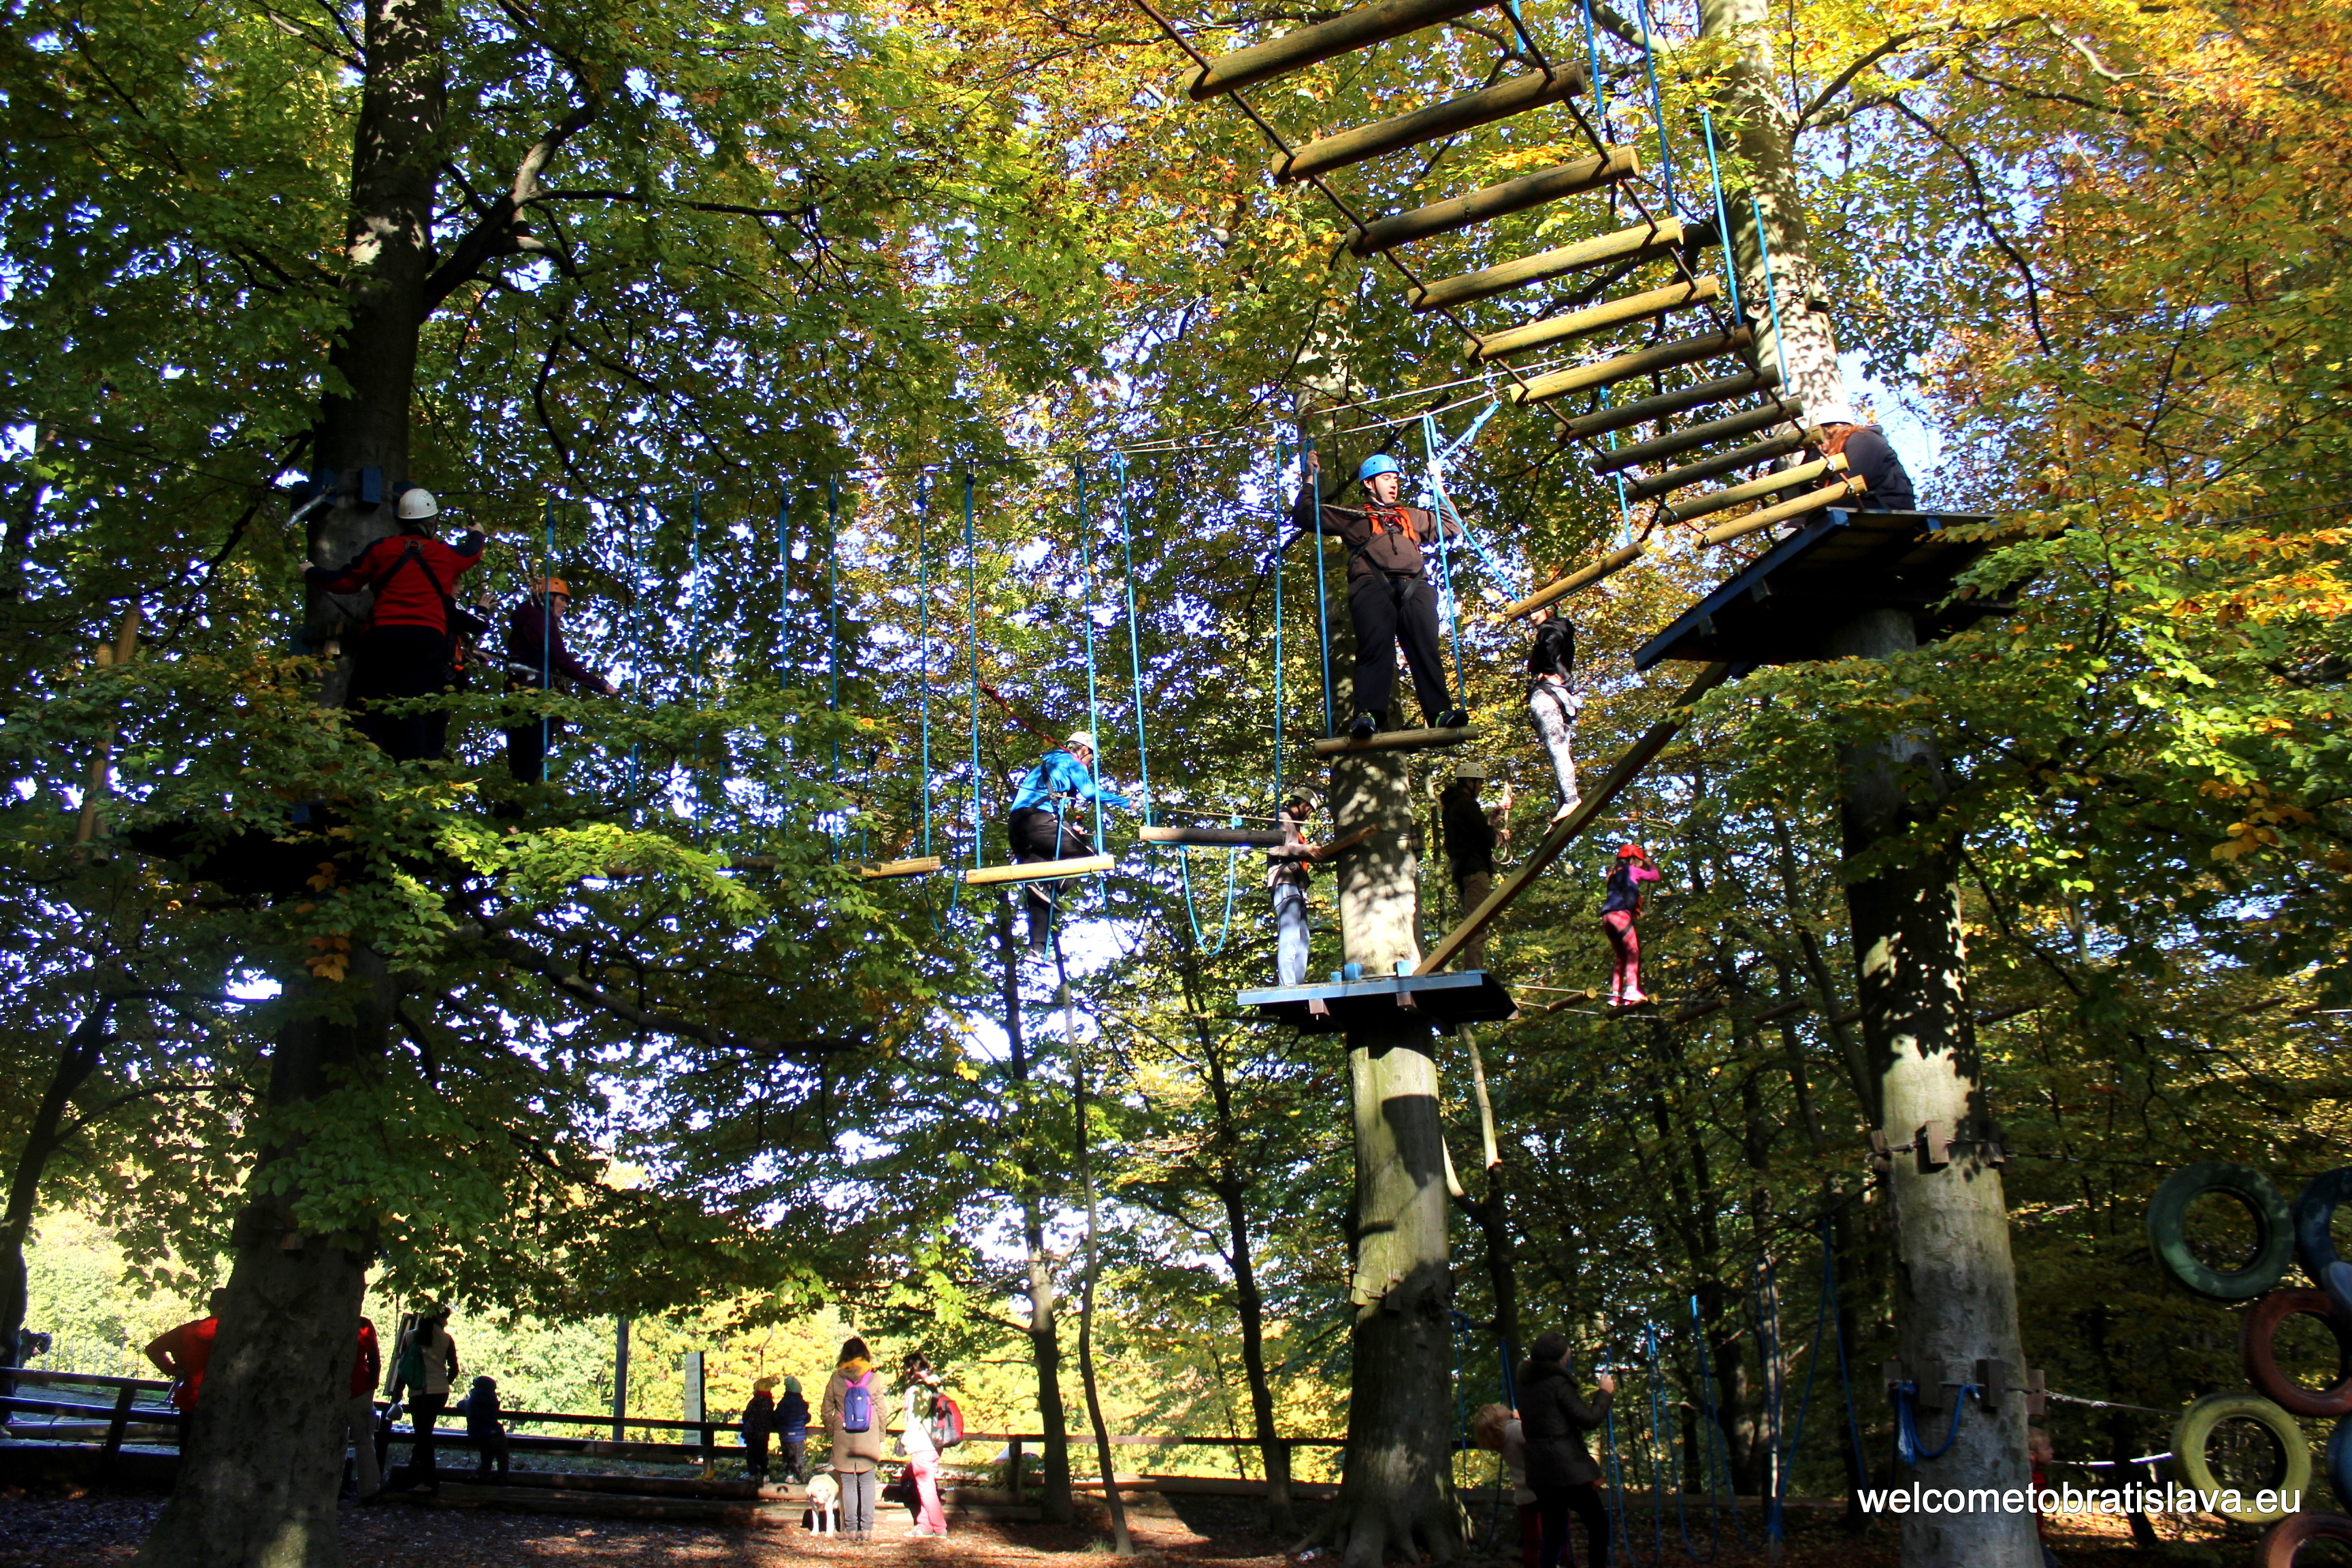 Outdoor places for kids in Bratislava - Lanoland Koliba